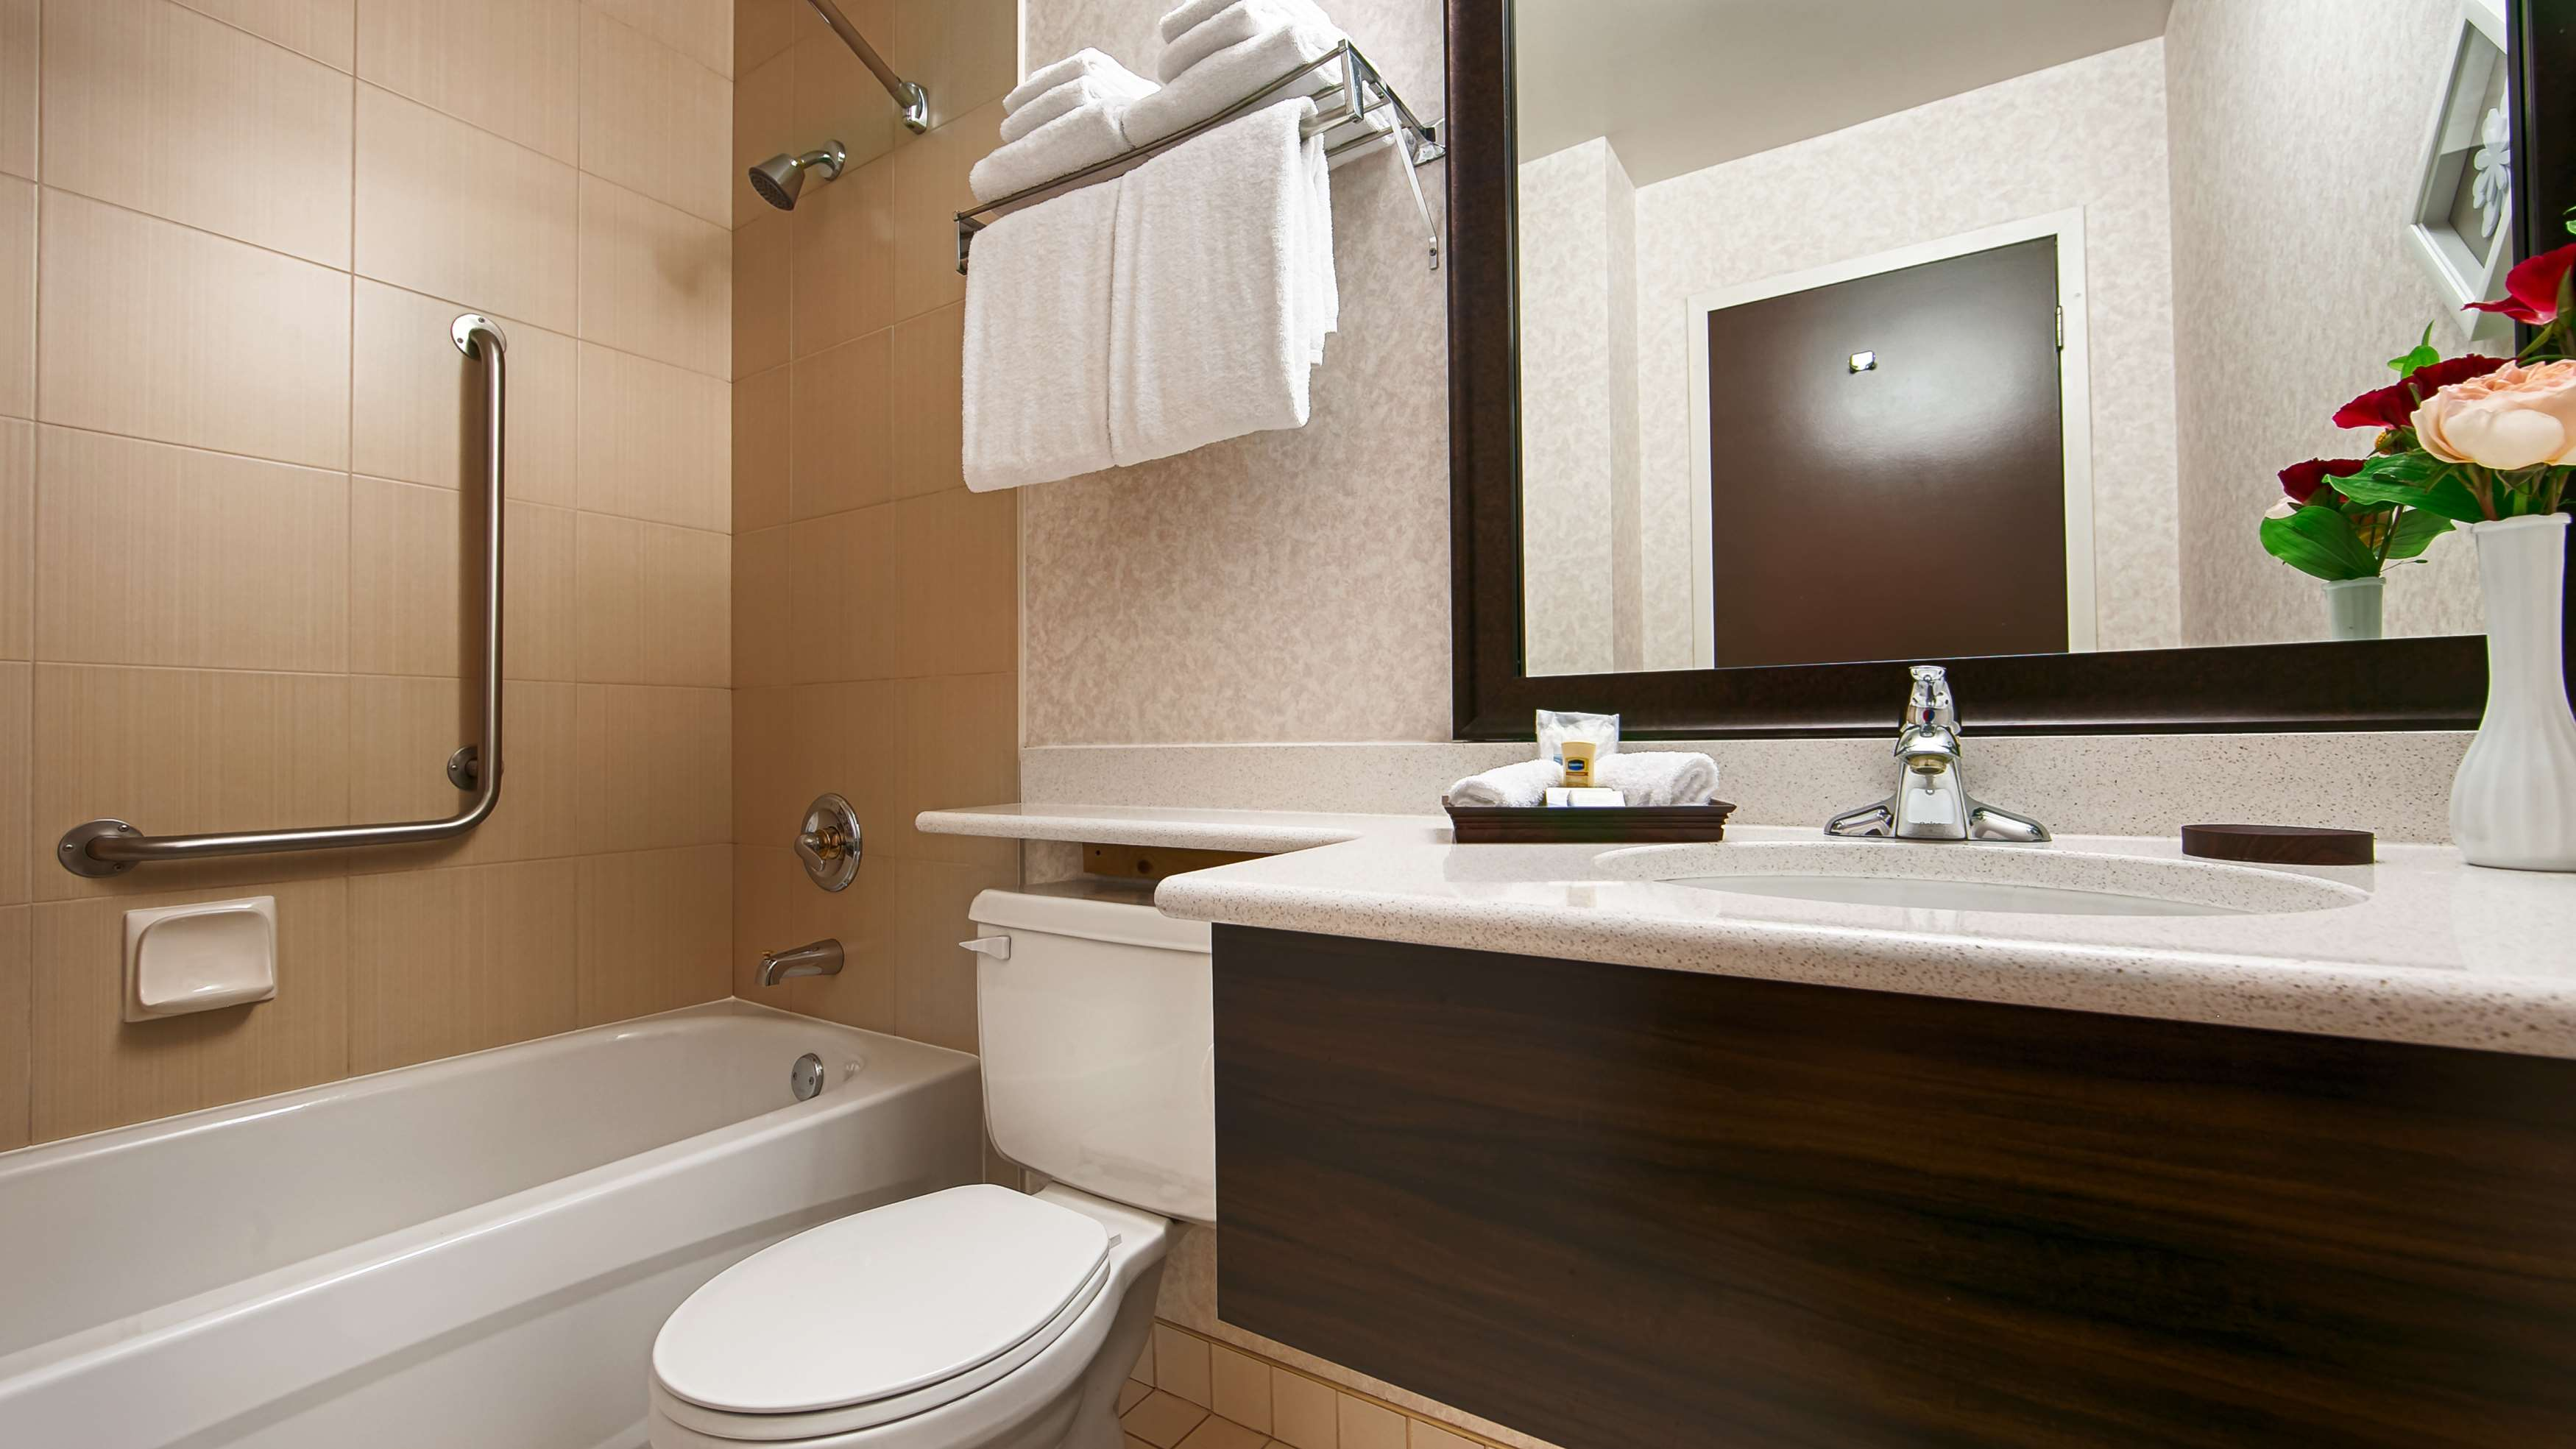 Best Western Plus Carlton Plaza Hotel in Victoria: Guest Bathroom